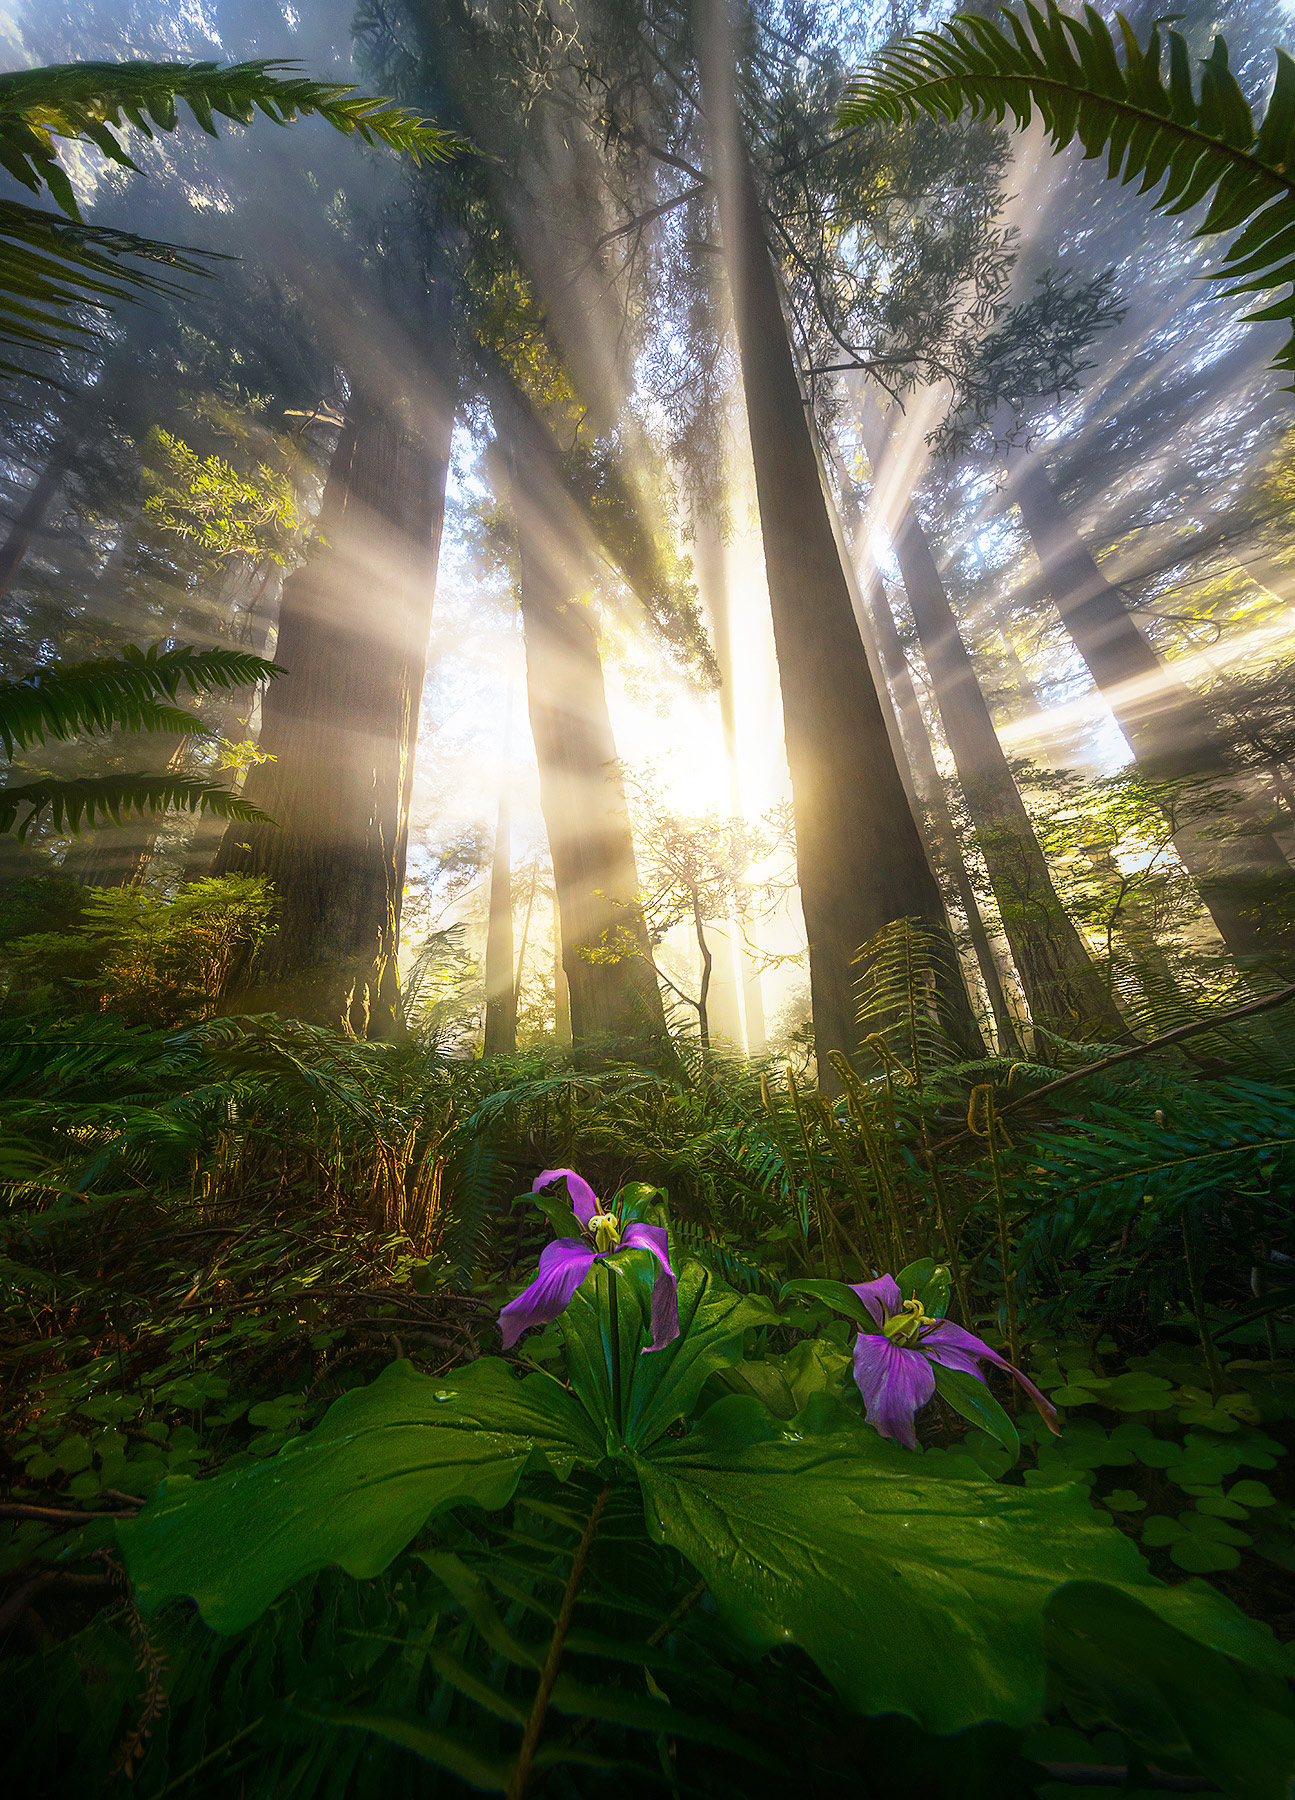 An amazing show of light over trillium flowers and ferns from a low, ultra-wide-angle perspective.